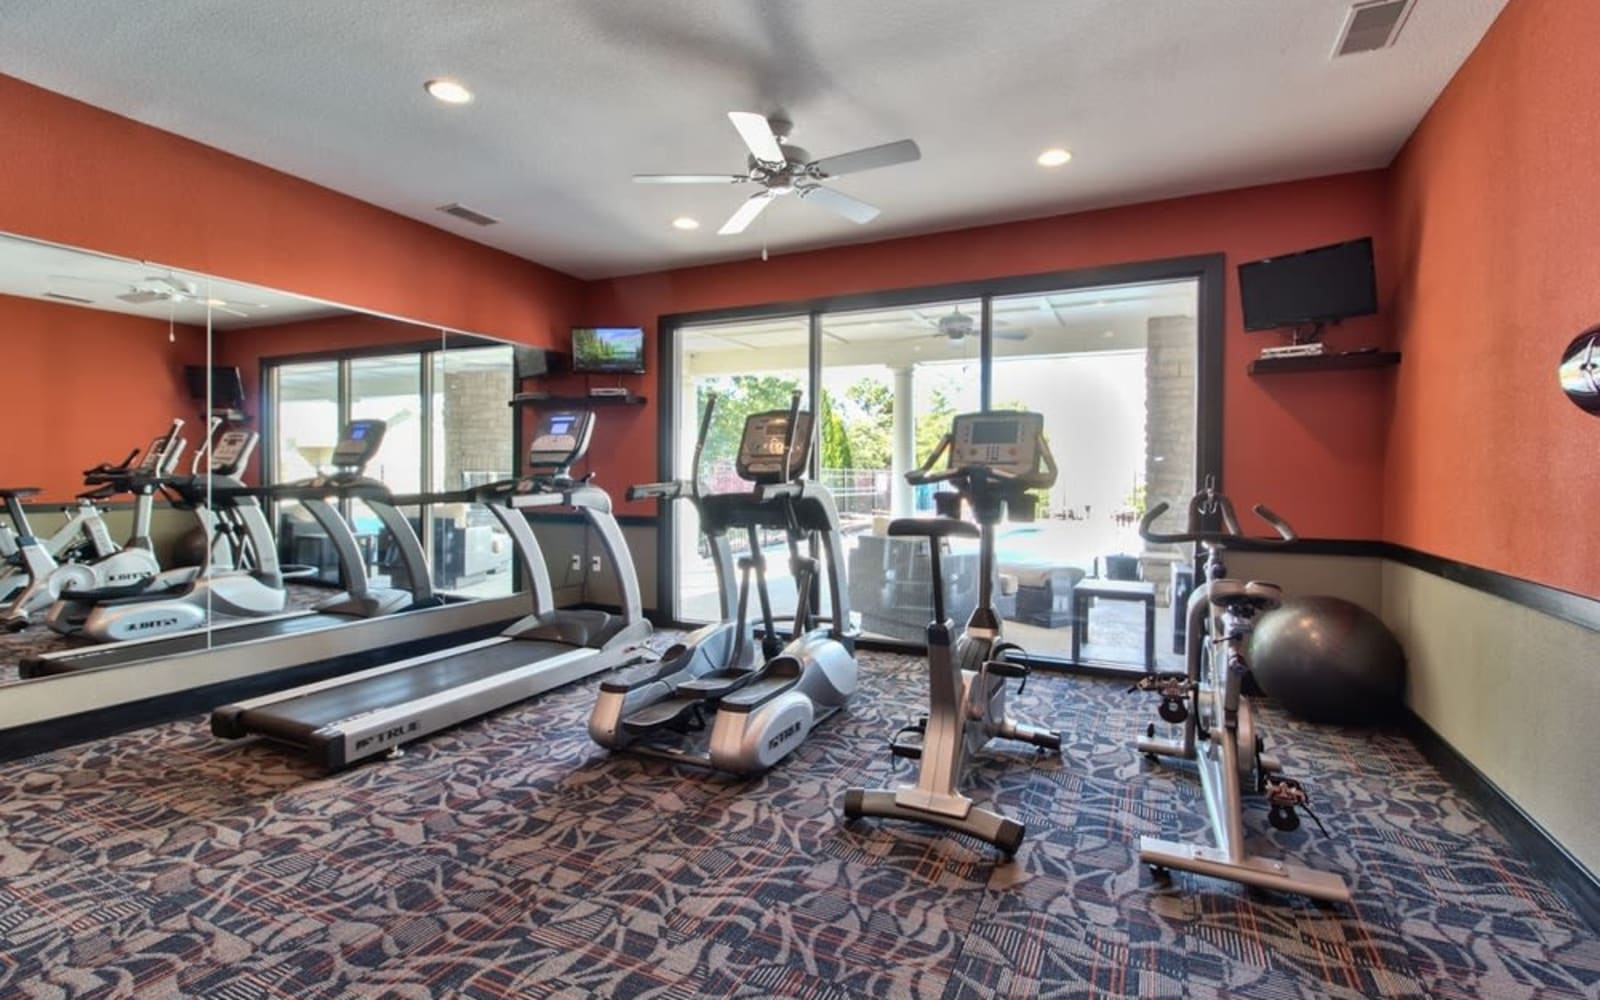 Resident fitness center at Aventura at Mid Rivers in Saint Charles, Missouri.